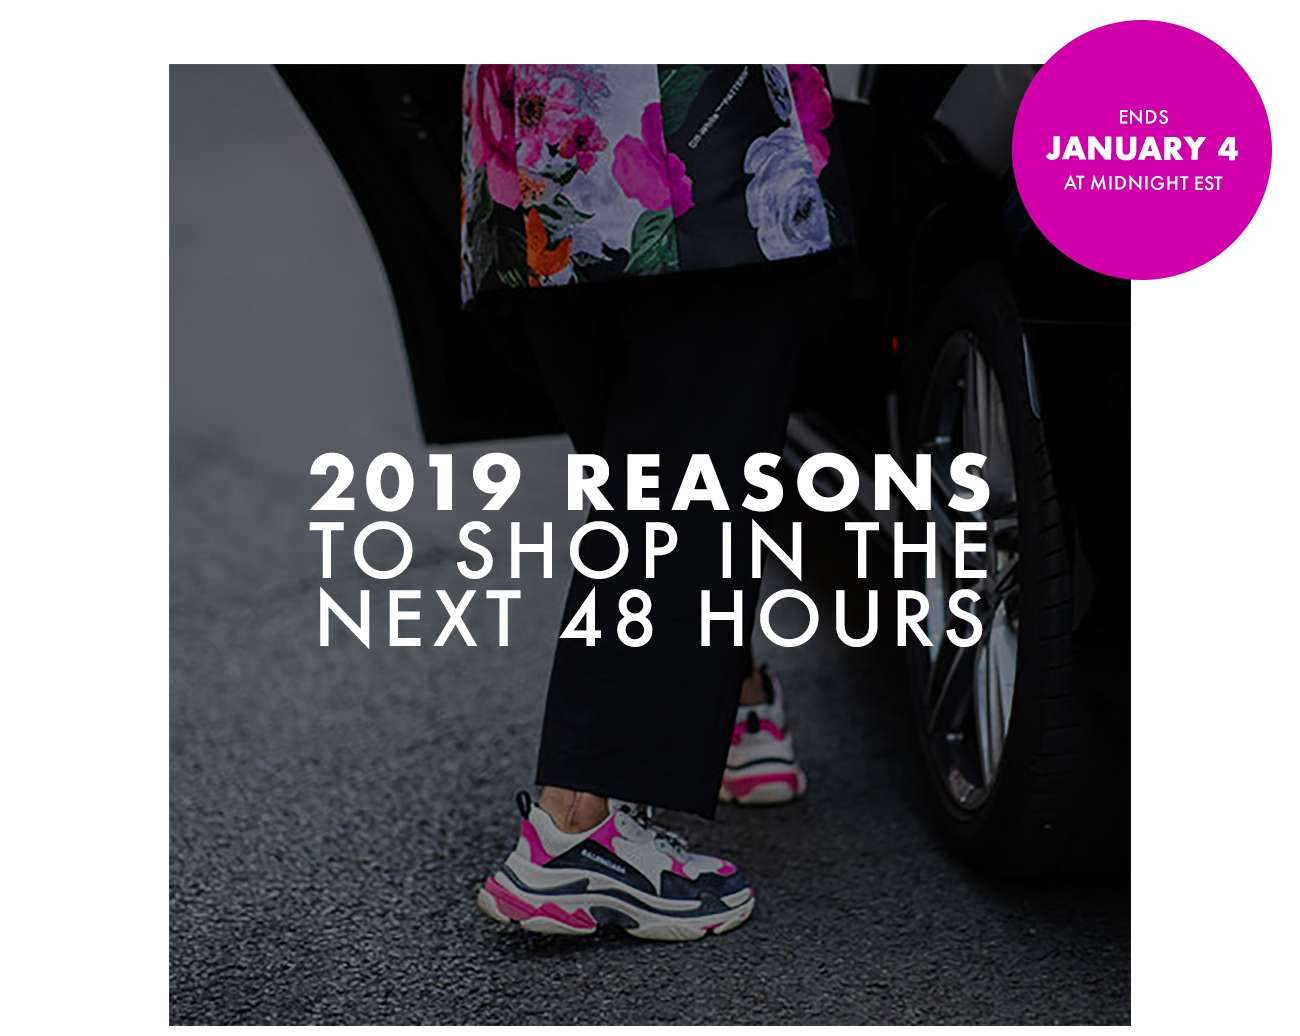 2019 reasons to shop in the next 48 hours